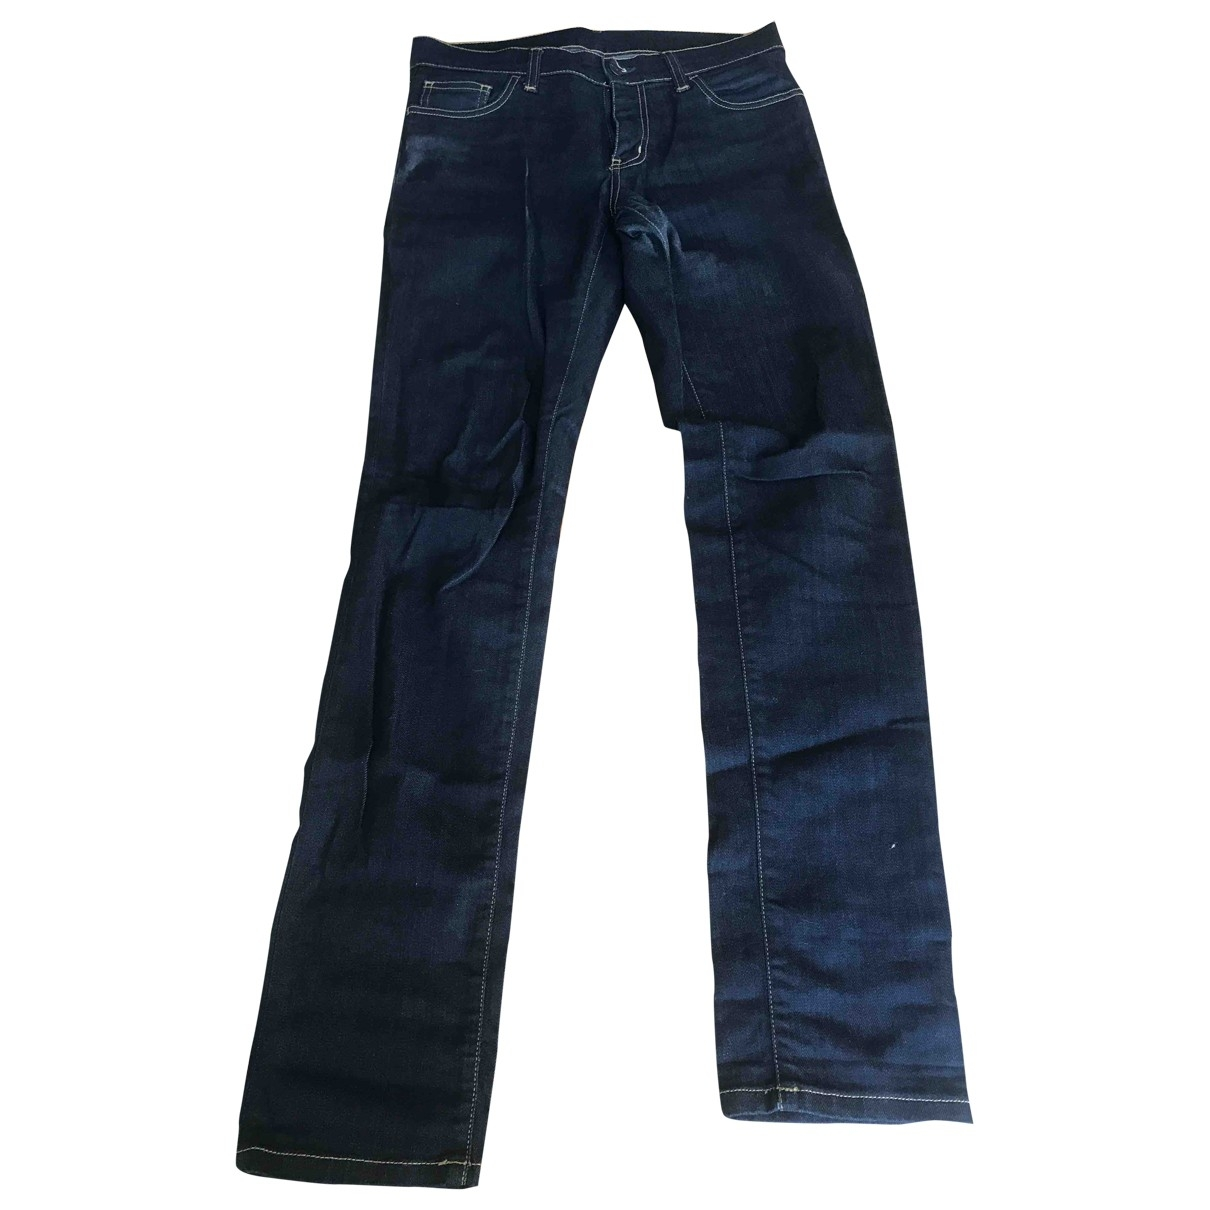 Carhartt Wip \N Blue Cotton - elasthane Jeans for Men 28 US